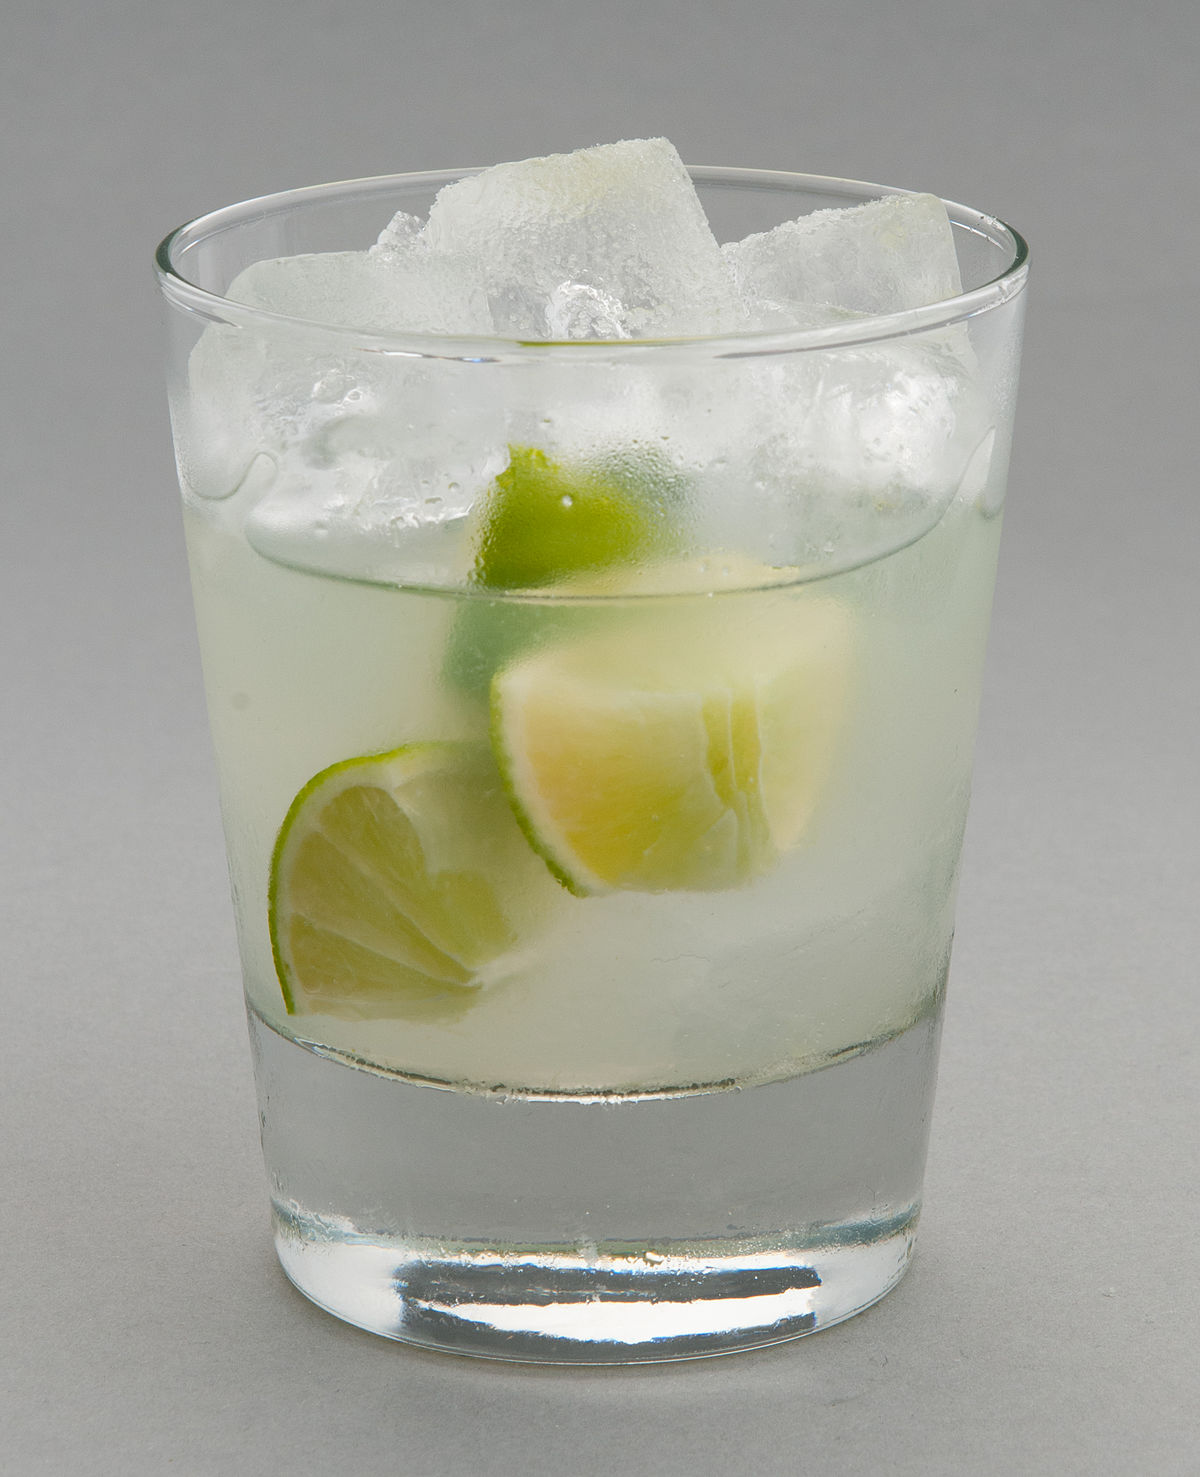 Vodka And Lime Drinks Crossword Clue